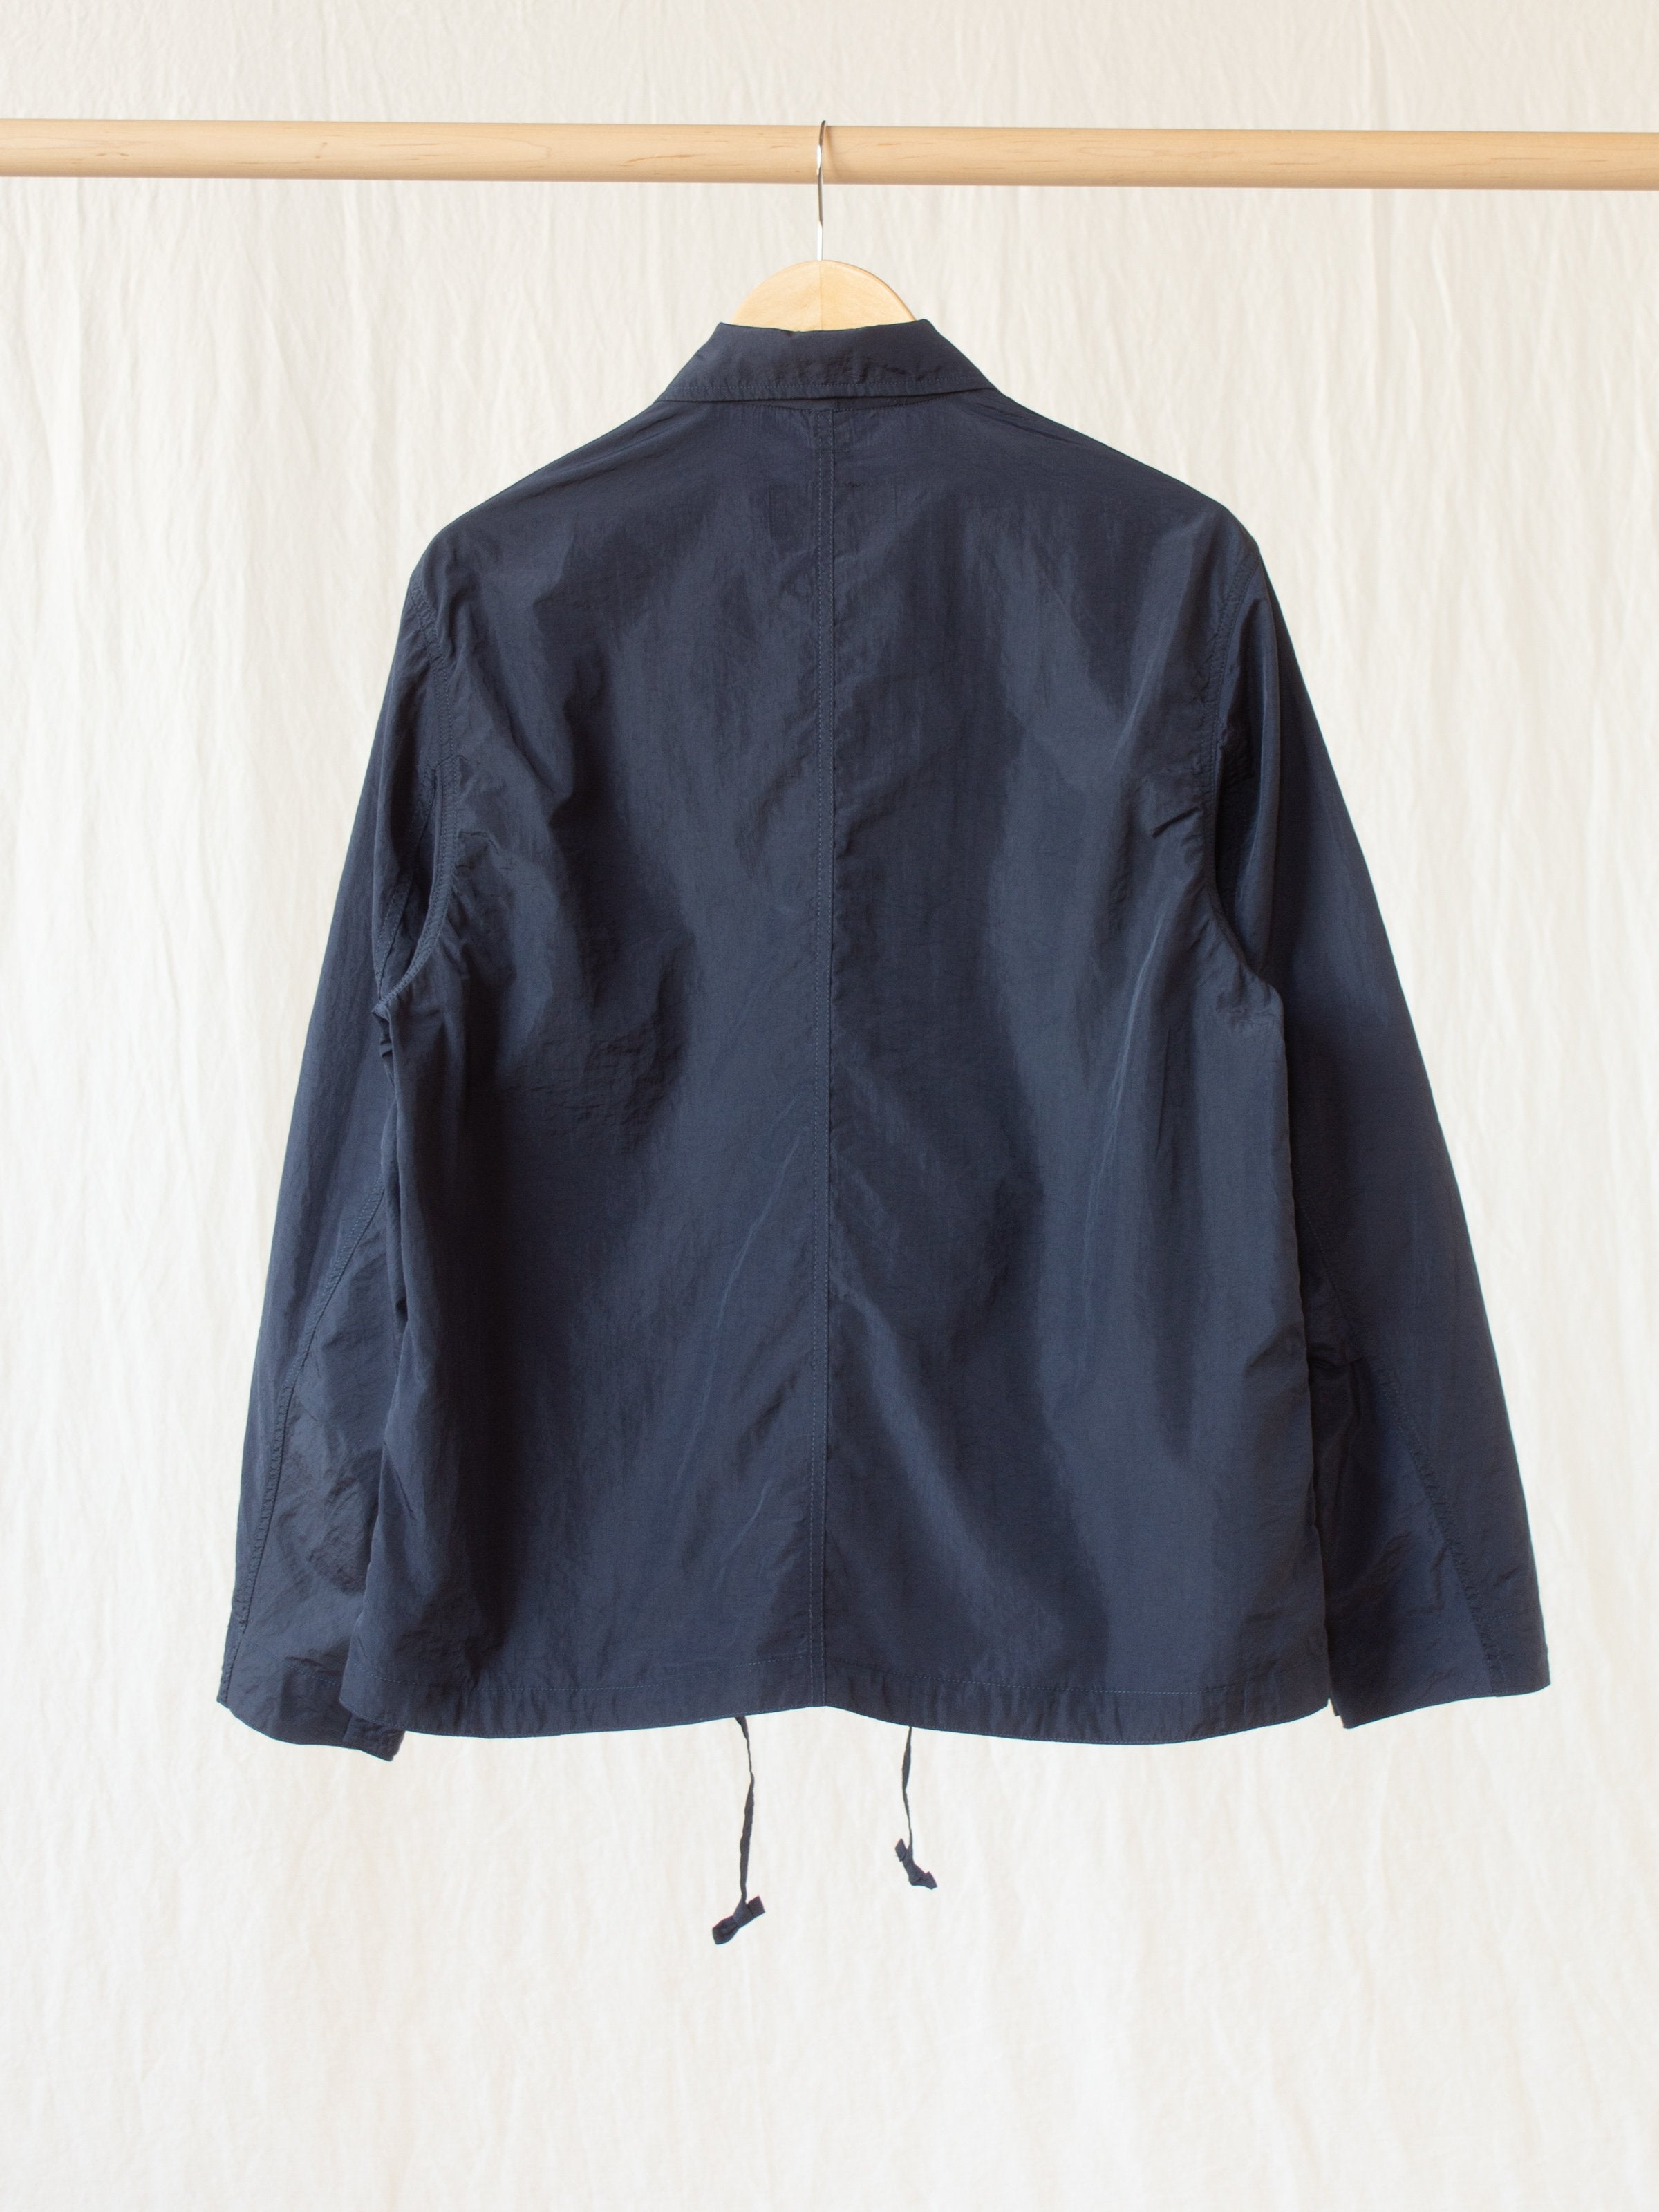 Namu Shop - Eastlogue Mechanic Jacket - Navy Nylon Washer